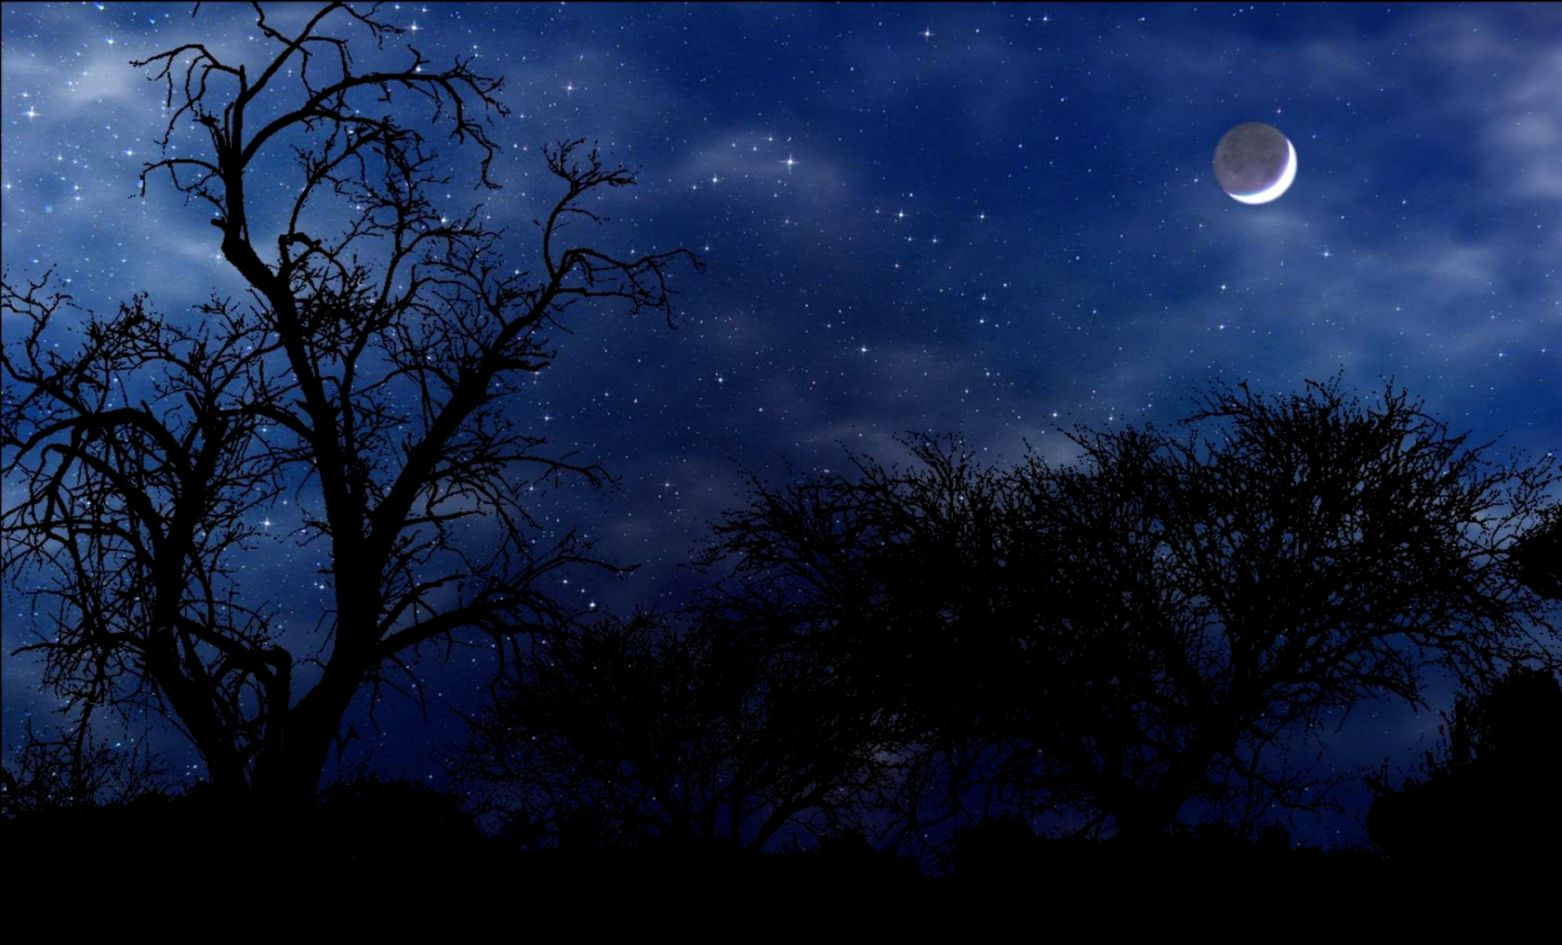 Night Nature Wallpaper   Wallpapers High Definition